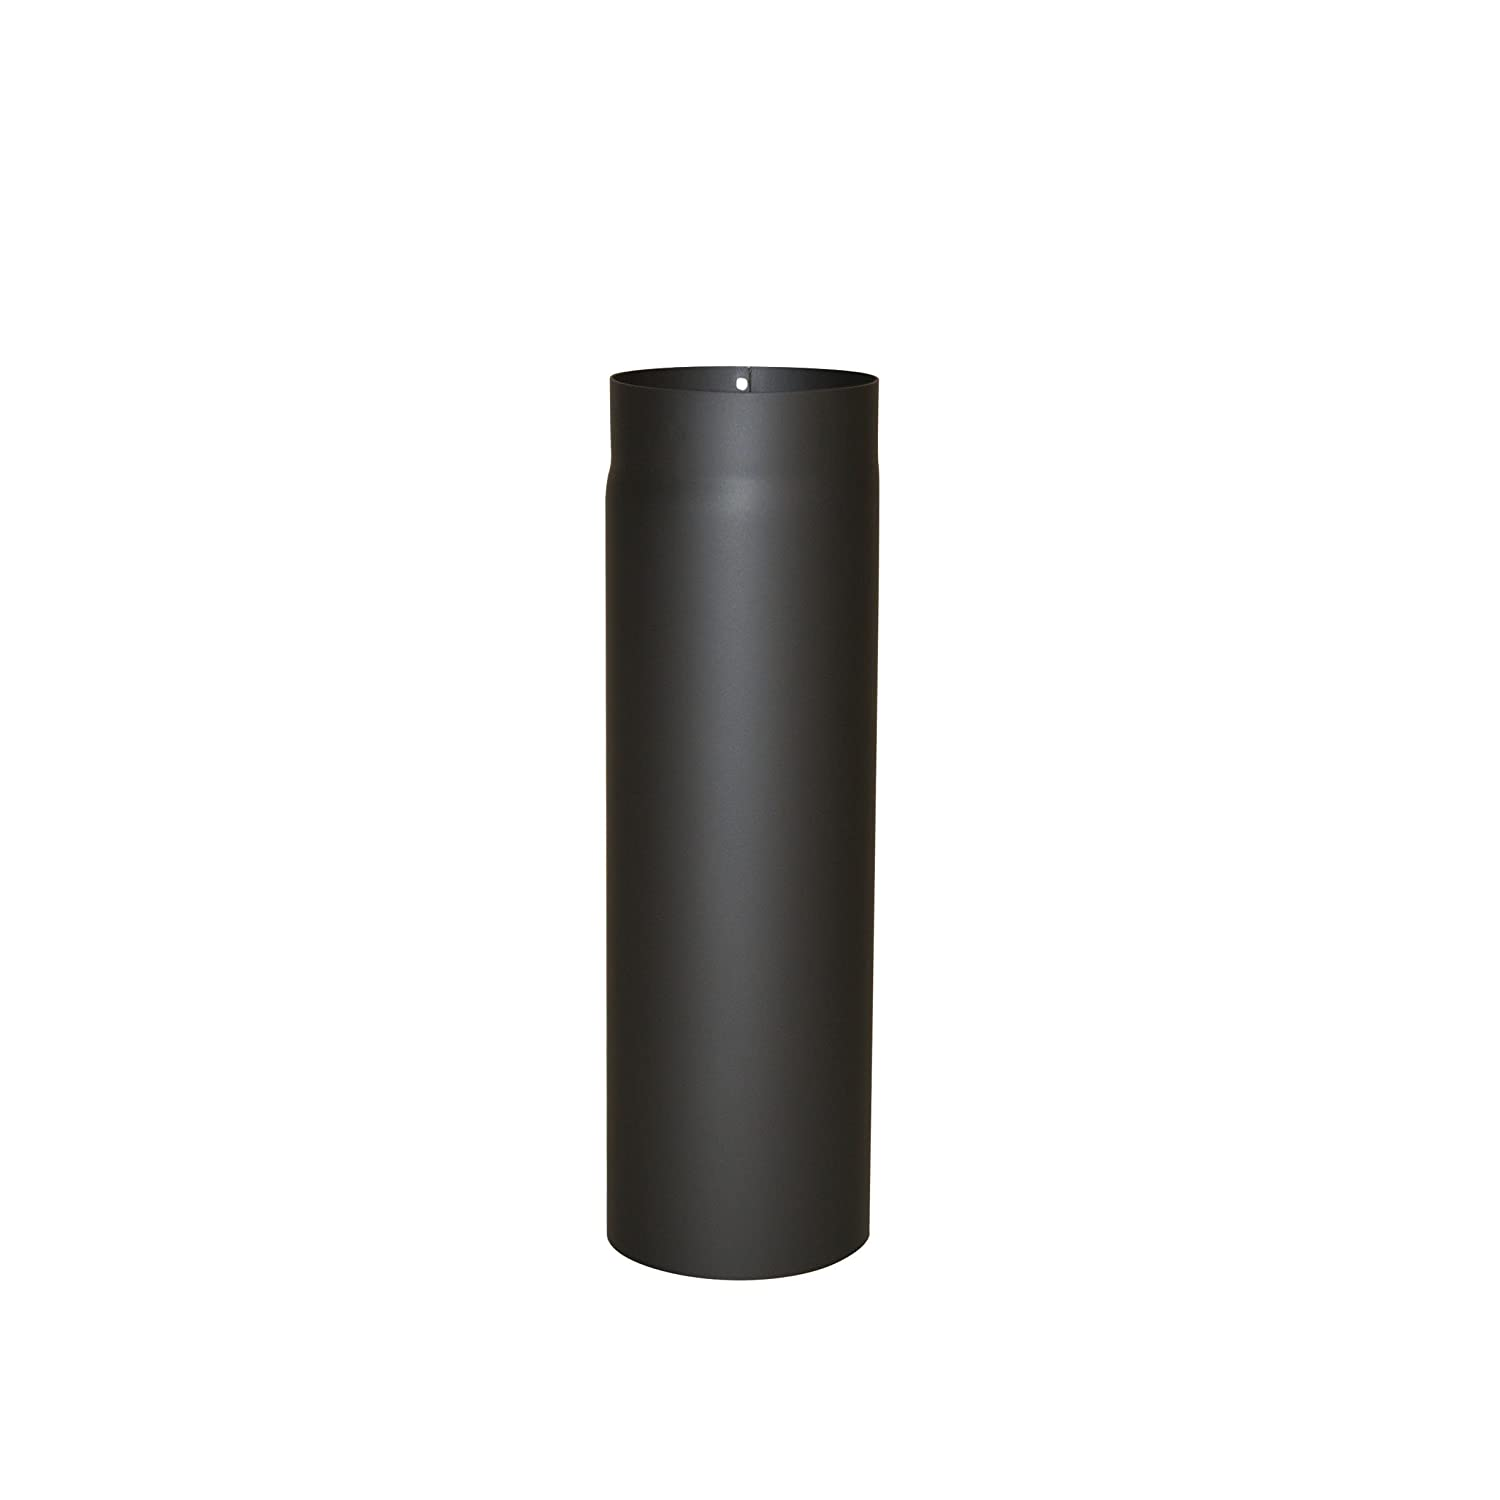 Kamino - Flam Heat Resistant Senotherm Coating Flue Pipe for Stoves, Black, 150 mm 331810